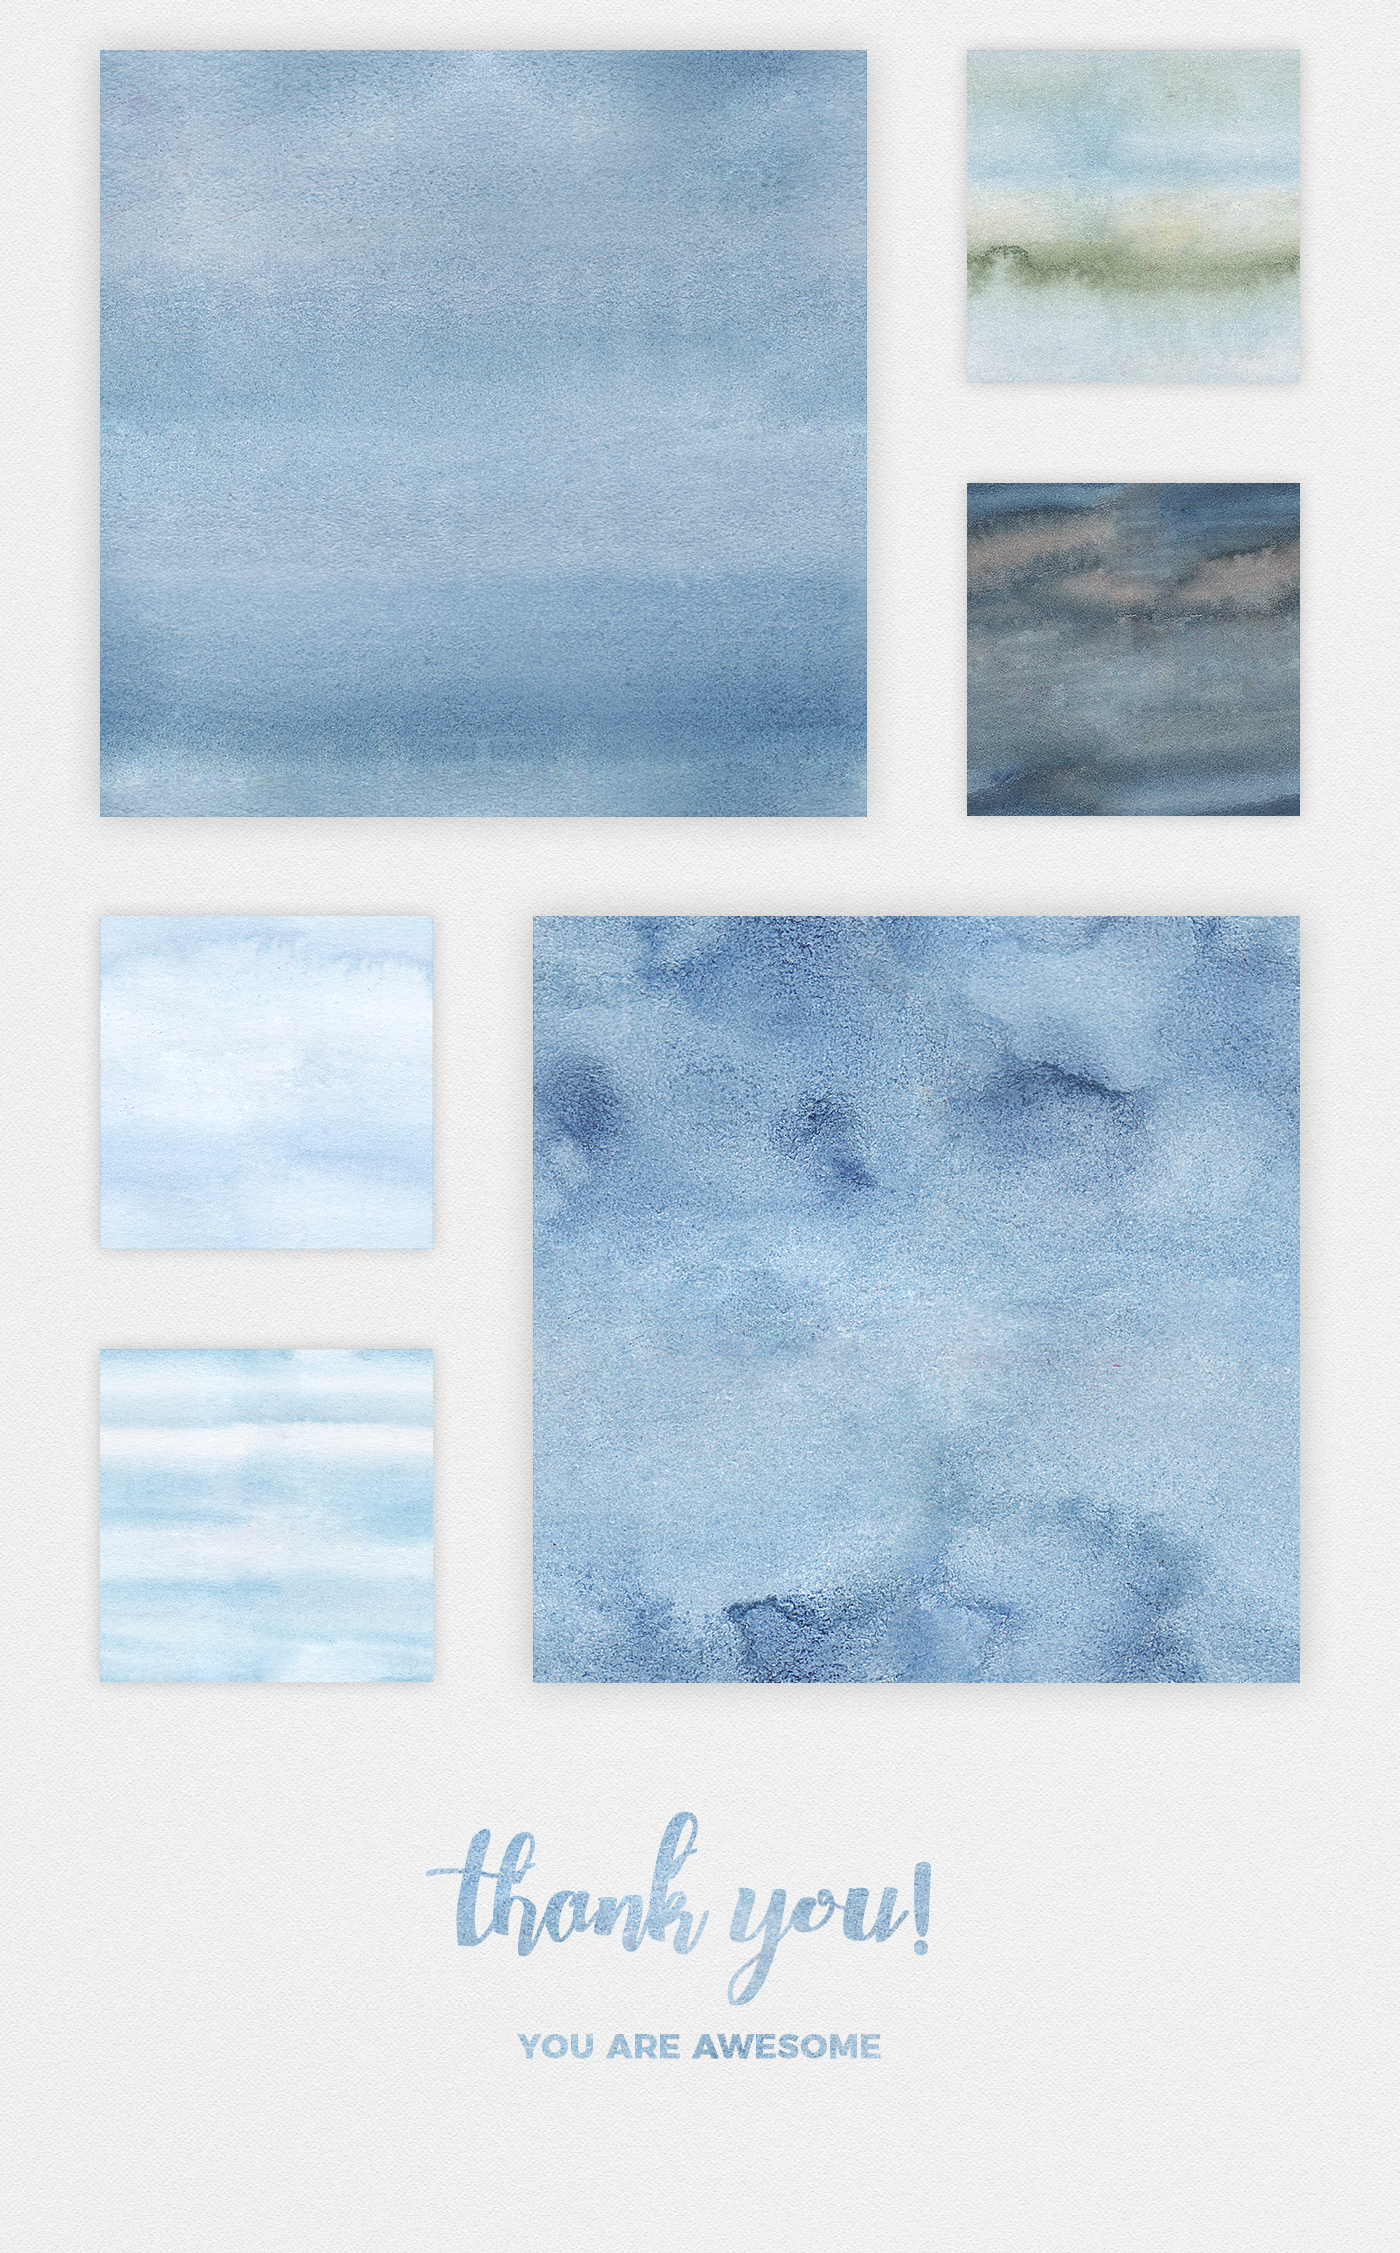 High-resolution blue watercolor textures